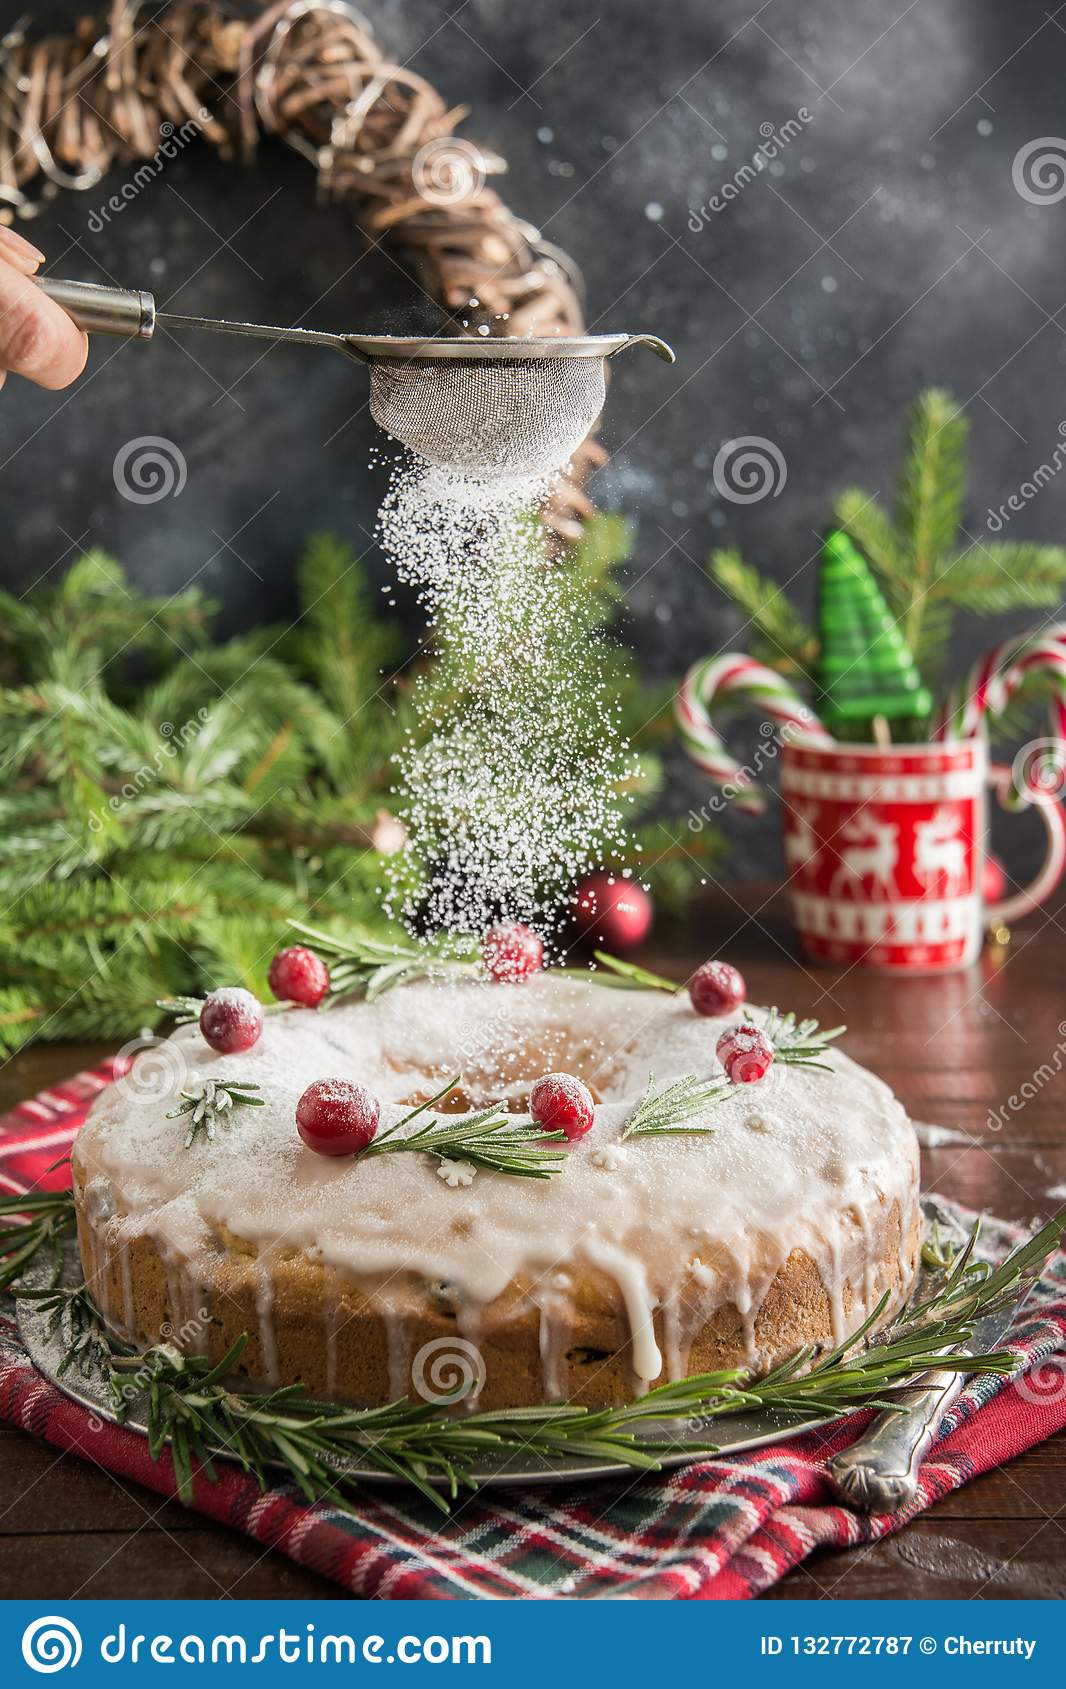 Traditional homemade Christmas cake with garnish cranberry and rosemary on decorative plate. Powdering with icing sugar.